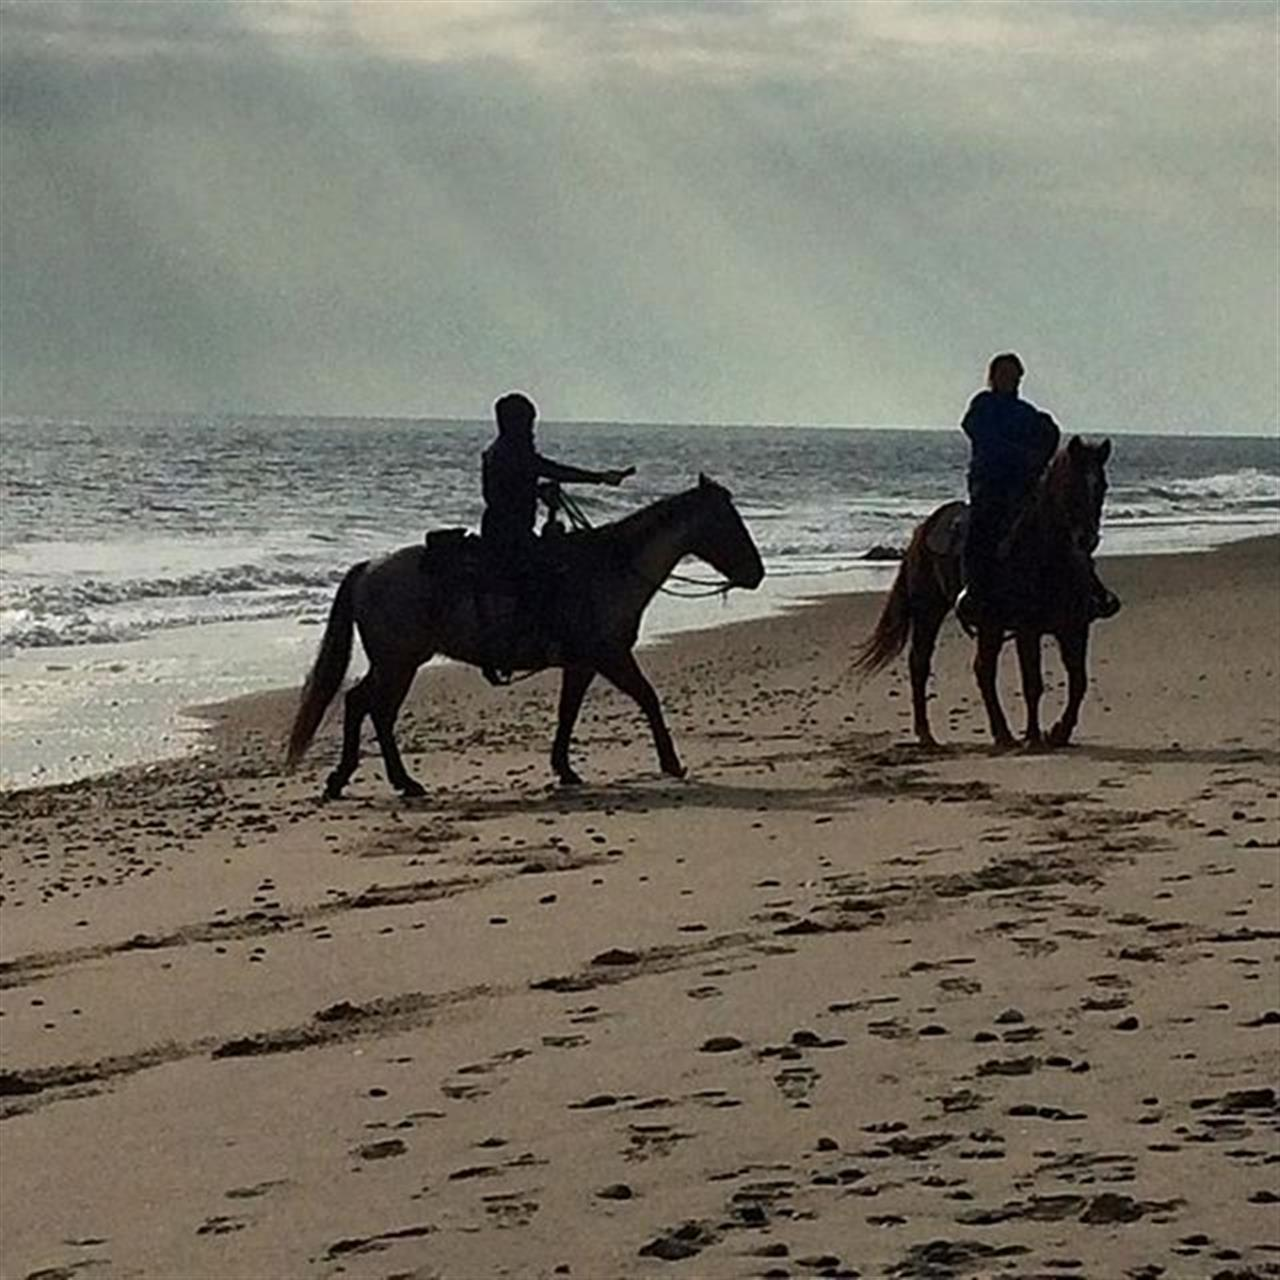 Beautiful winter day for a ride on the beach #horses #riding #beach #rhodeisland #outdoors #adventure #enjoylife #leadingRE #lovelife #havefun #adventure #play #photography #southkingstown #rhodeisland